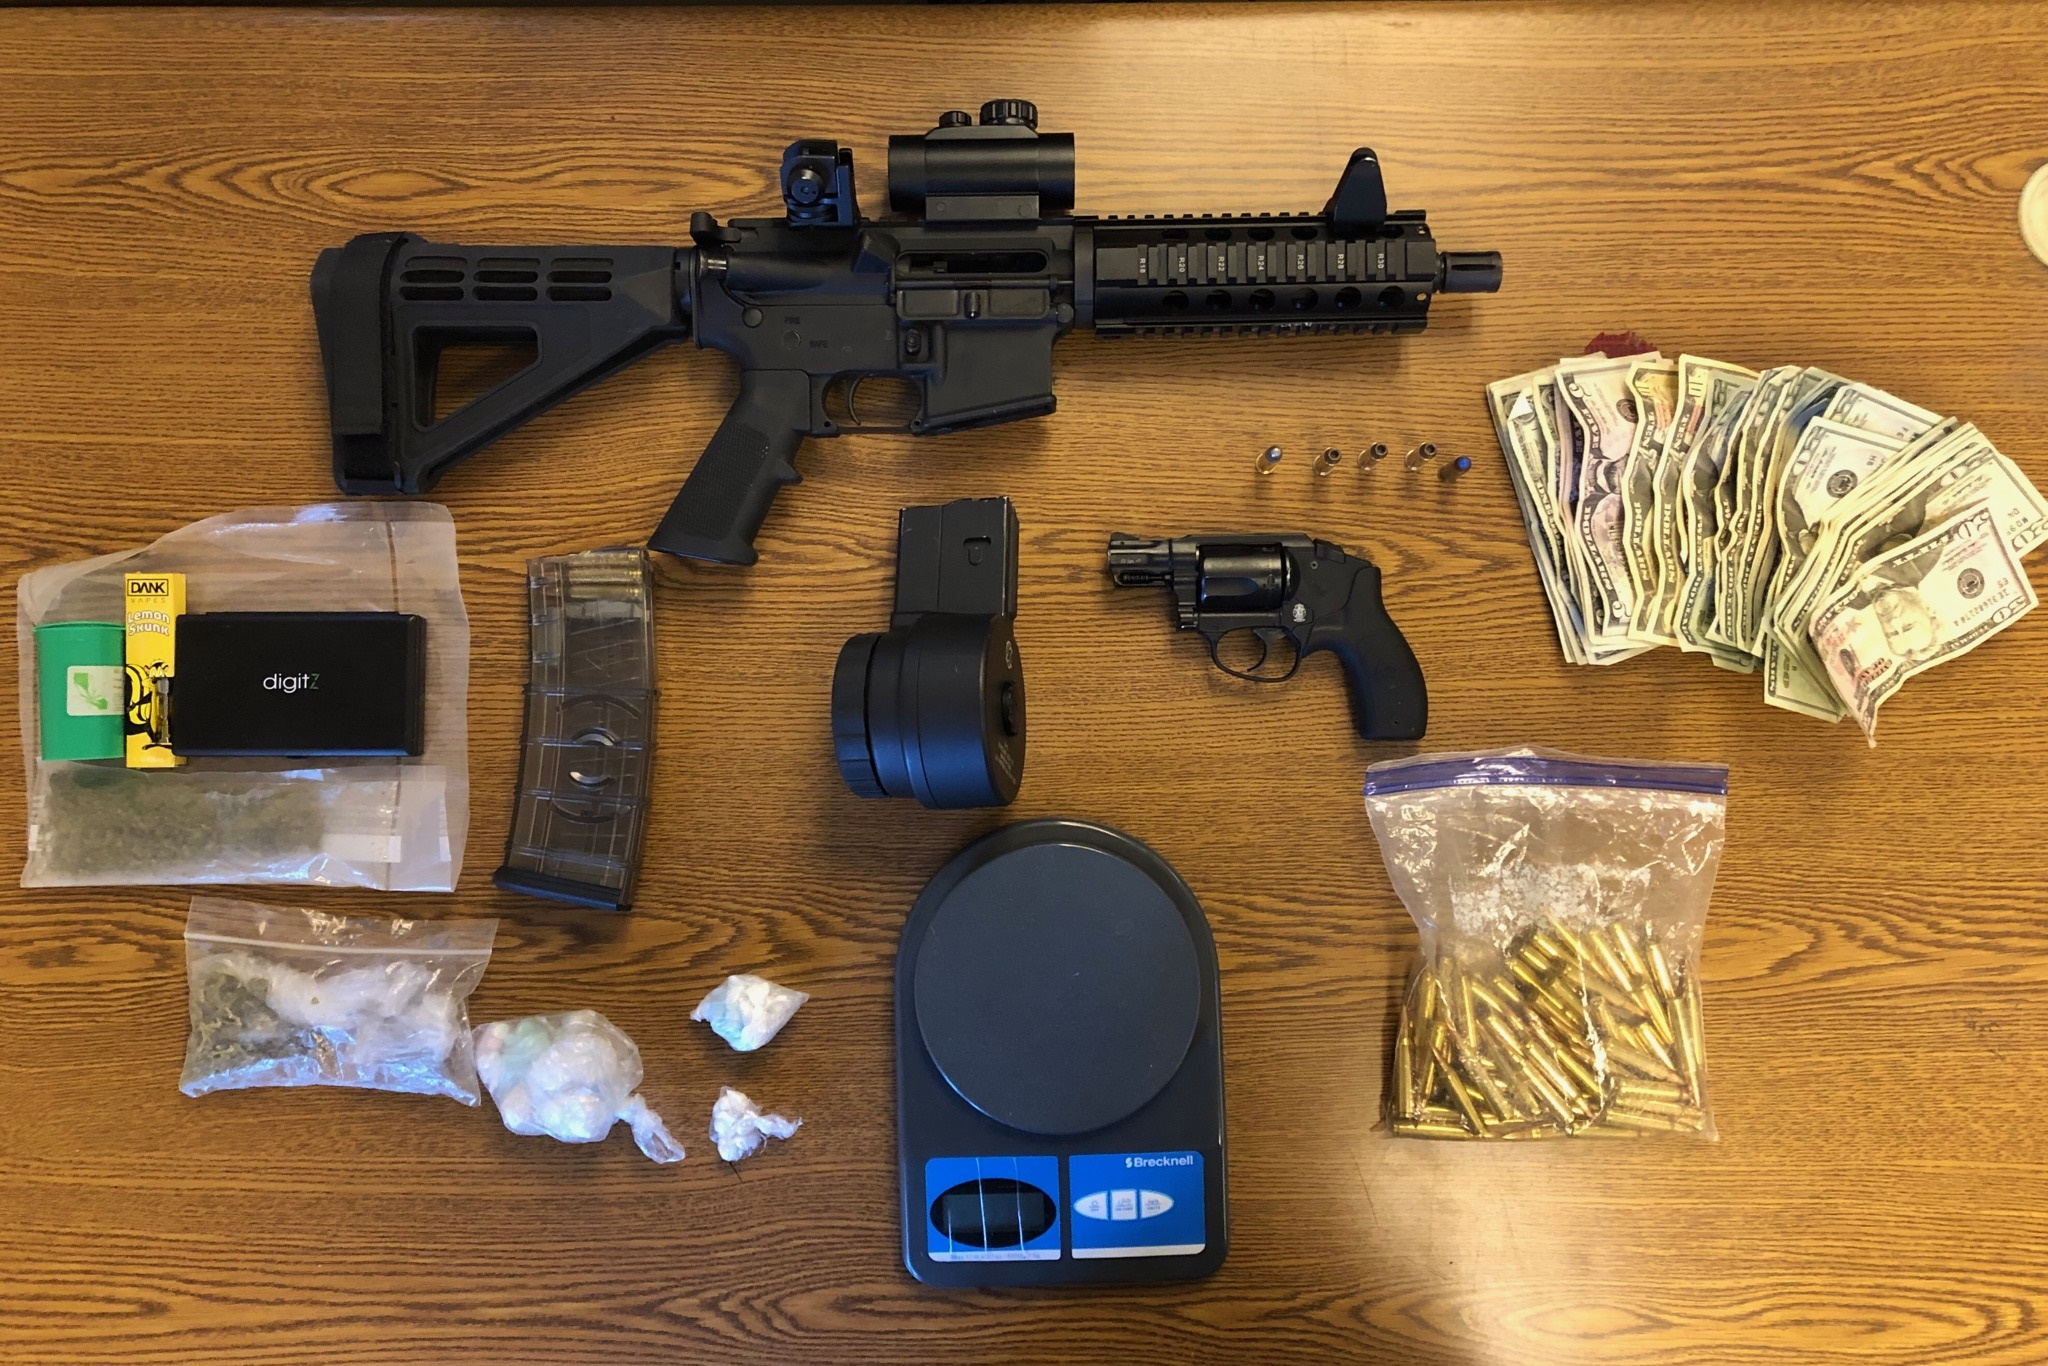 Man Charged with UUW after Firearms, Ammunition Found in Apartment